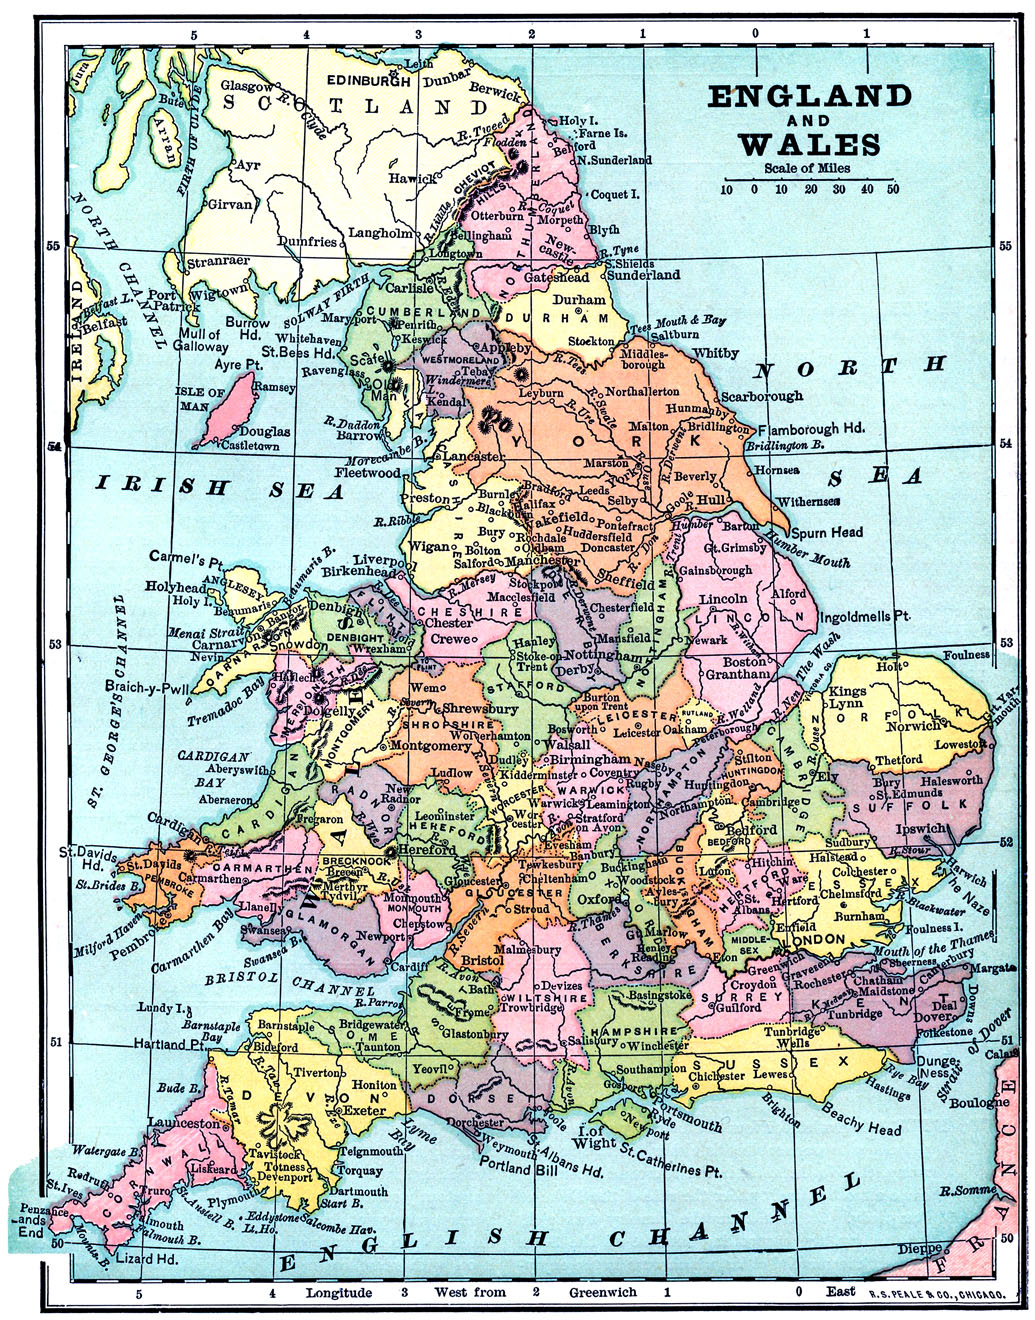 Remarkable image regarding printable map of england